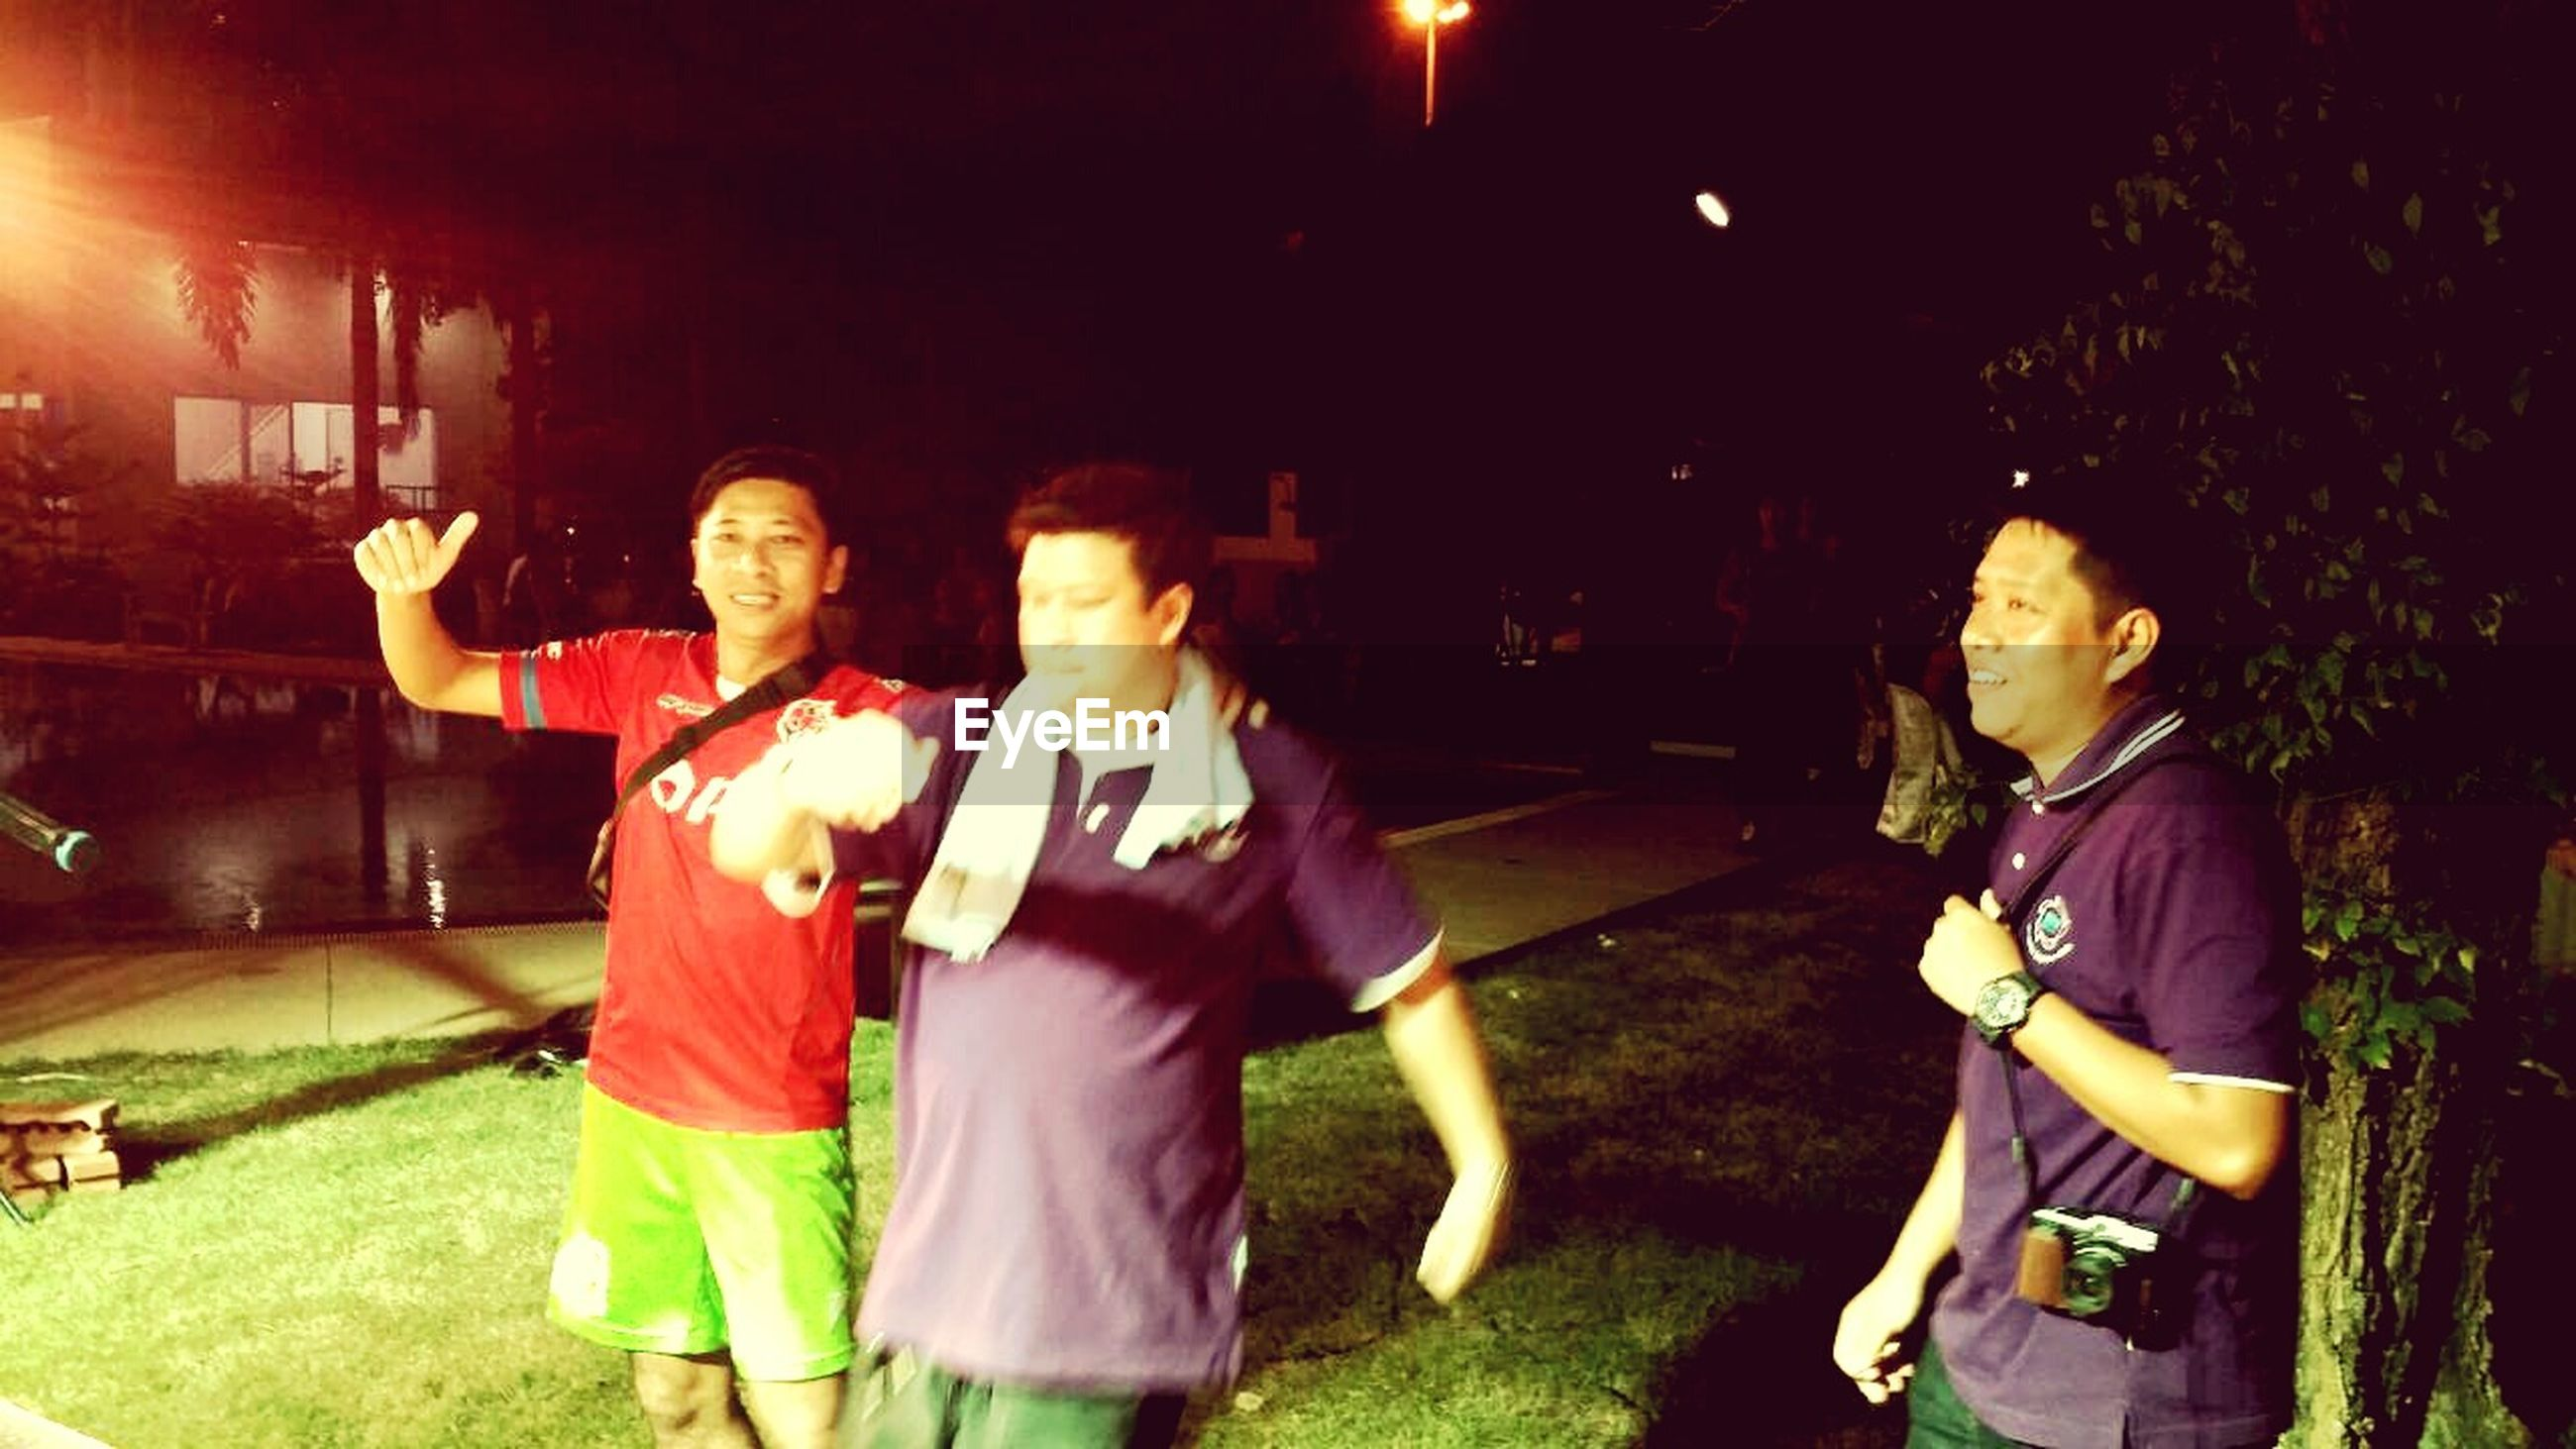 night, lifestyles, illuminated, casual clothing, leisure activity, togetherness, full length, standing, celebration, enjoyment, fun, person, men, bonding, front view, boys, three quarter length, happiness